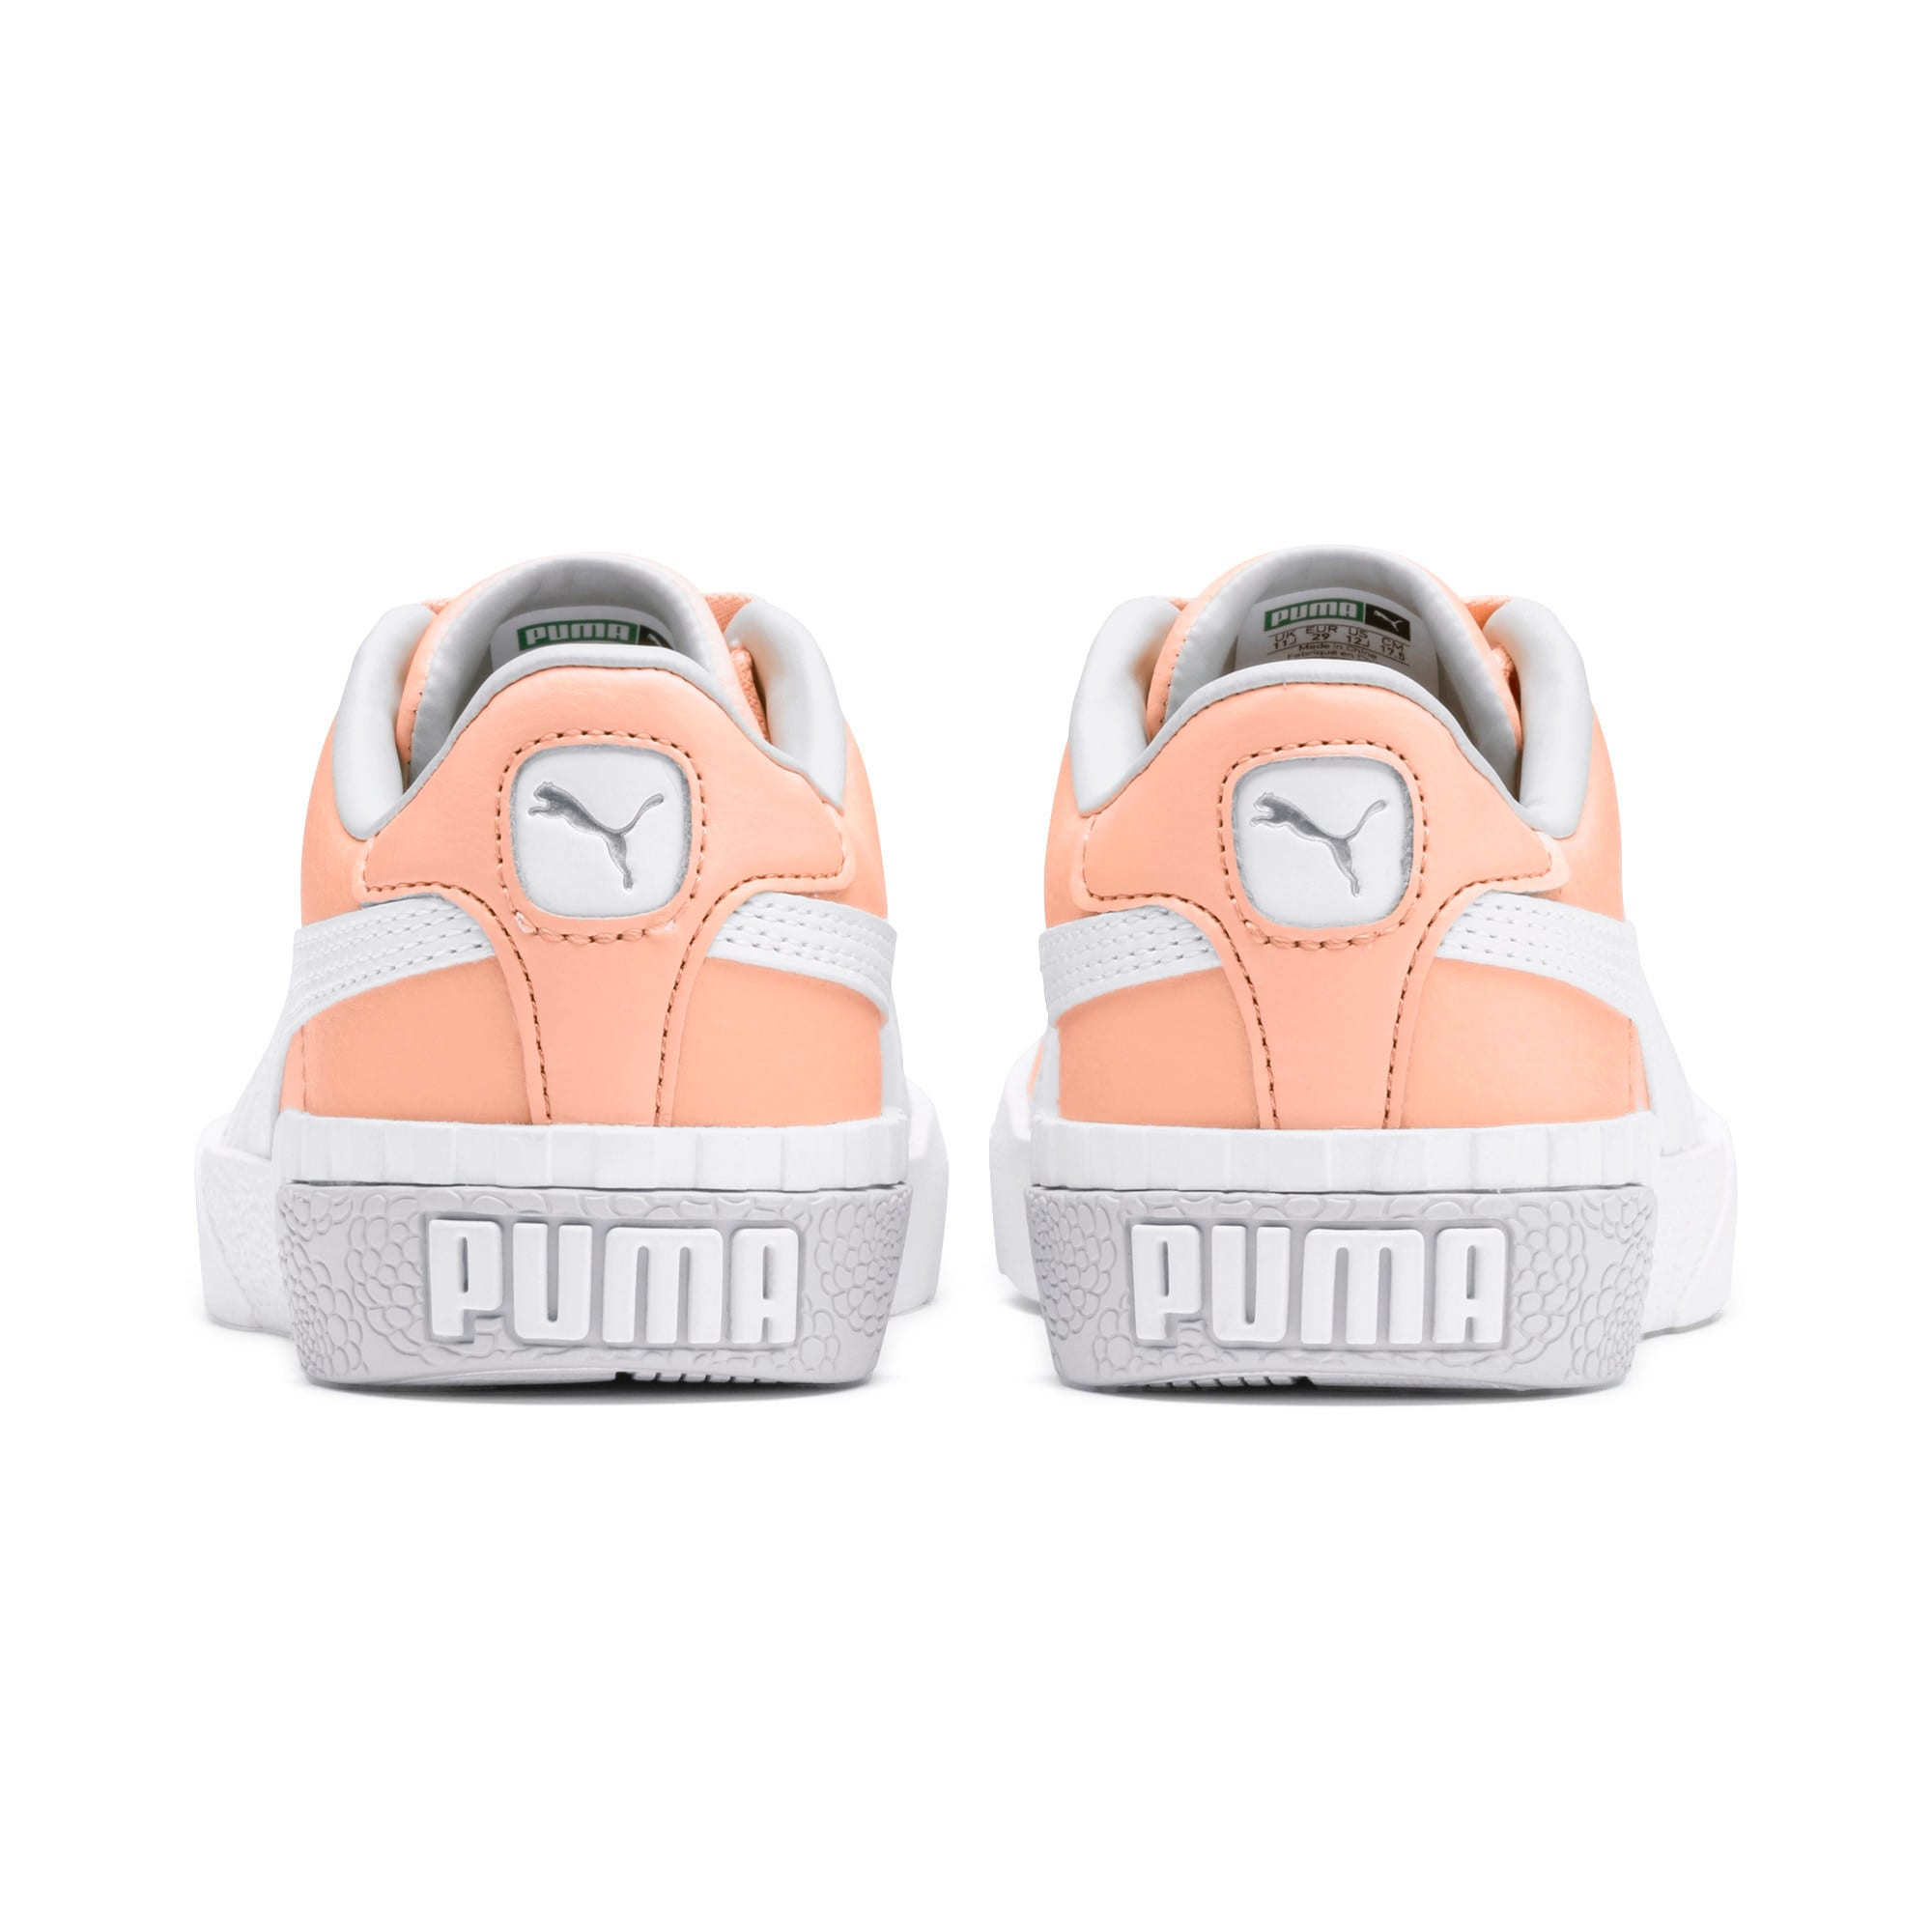 Thumbnail 3 of Cali Girls' Trainers, Peach Parfait-Heather, medium